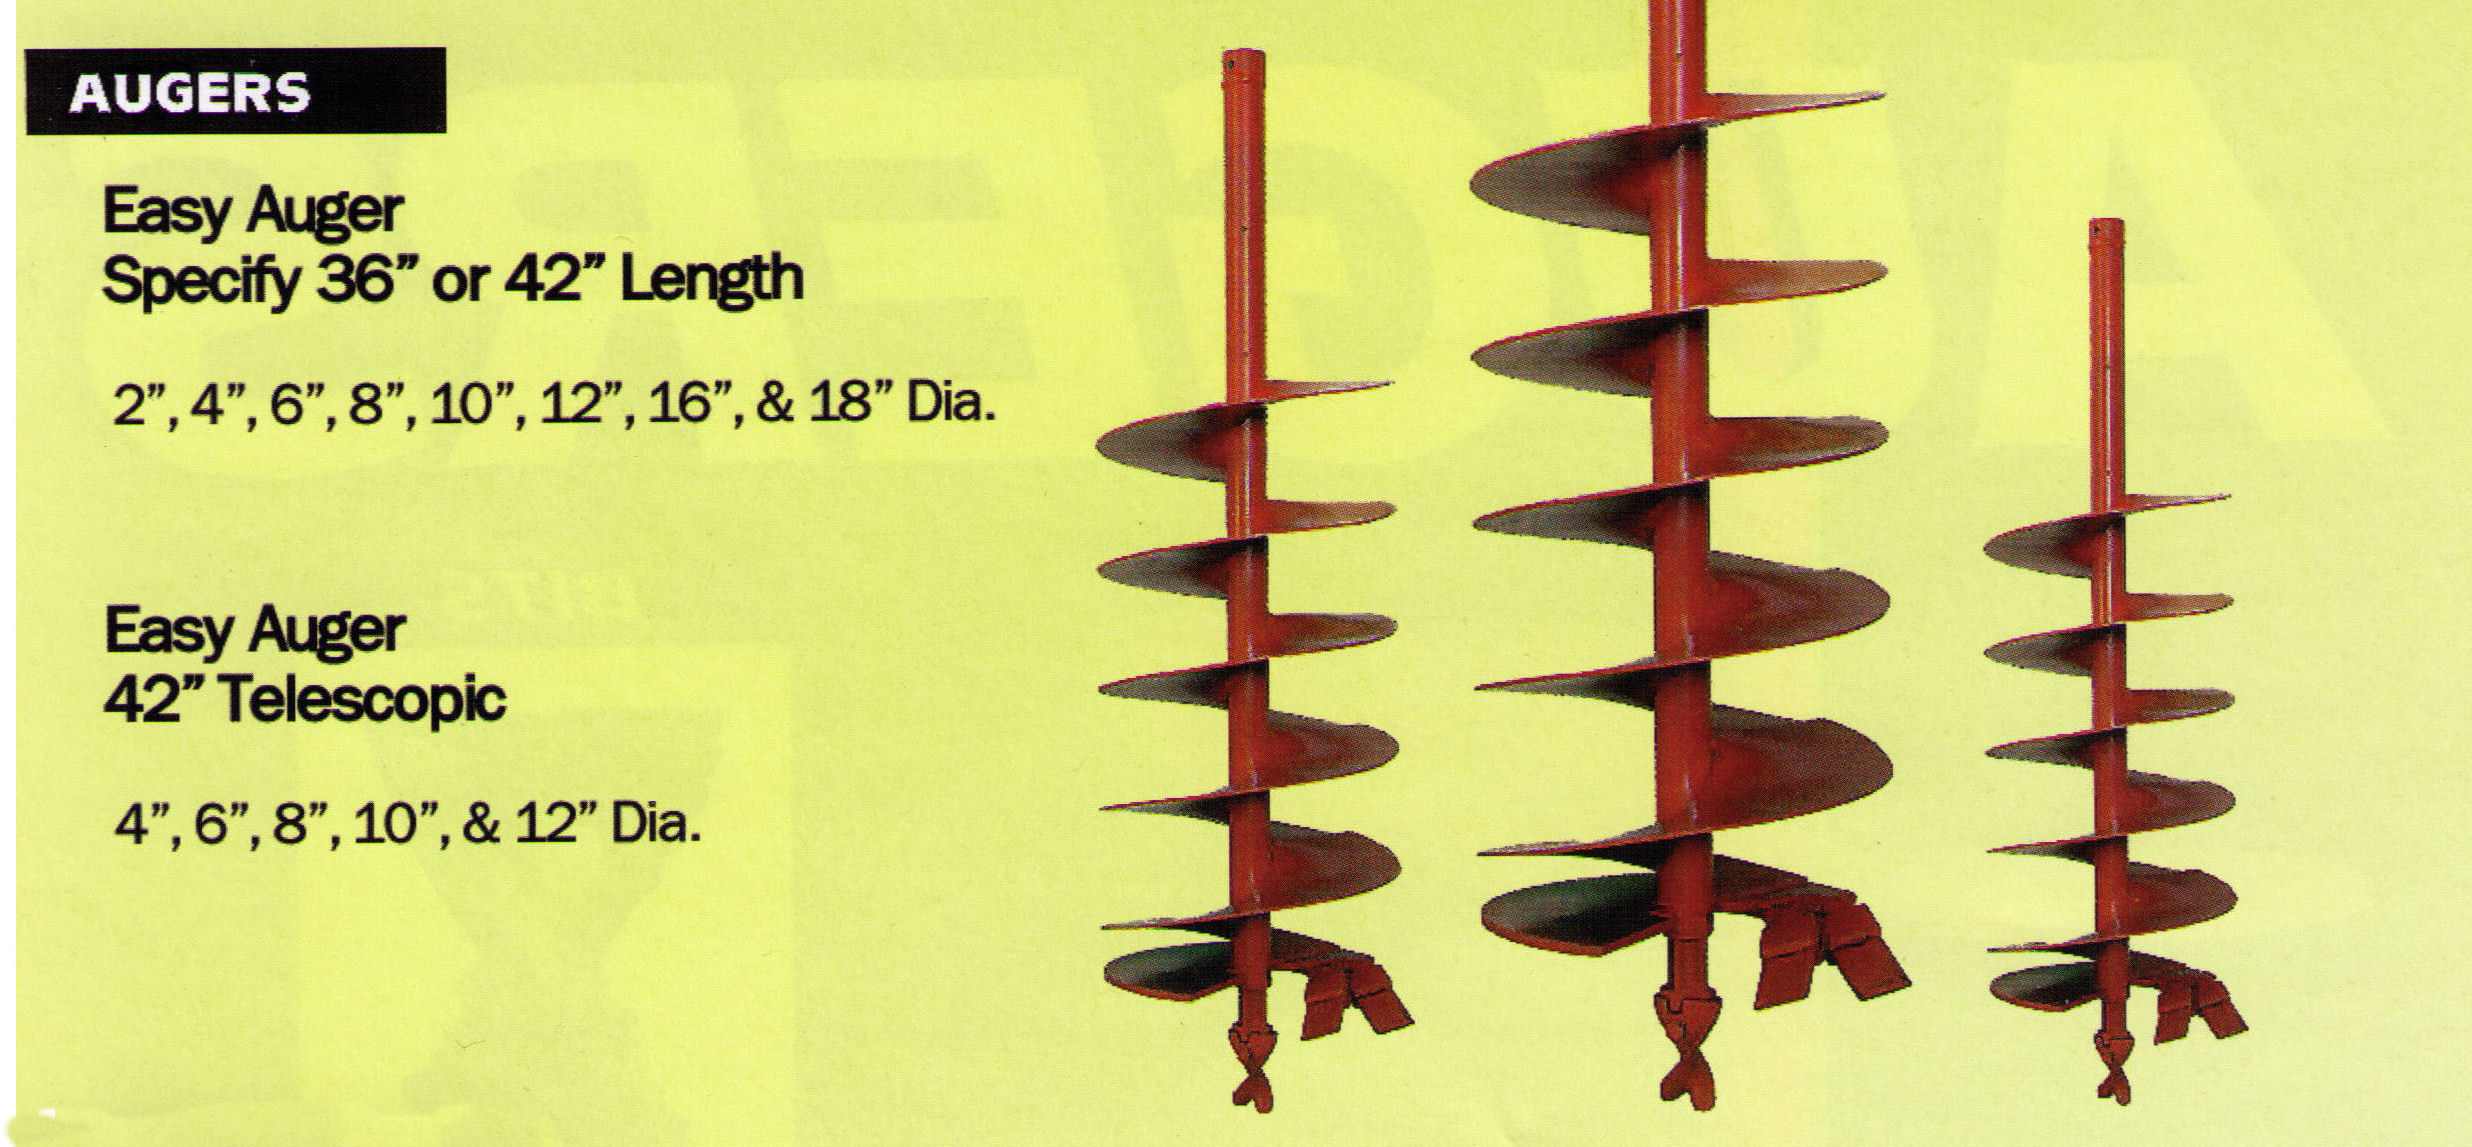 Available Earth Auger Bits